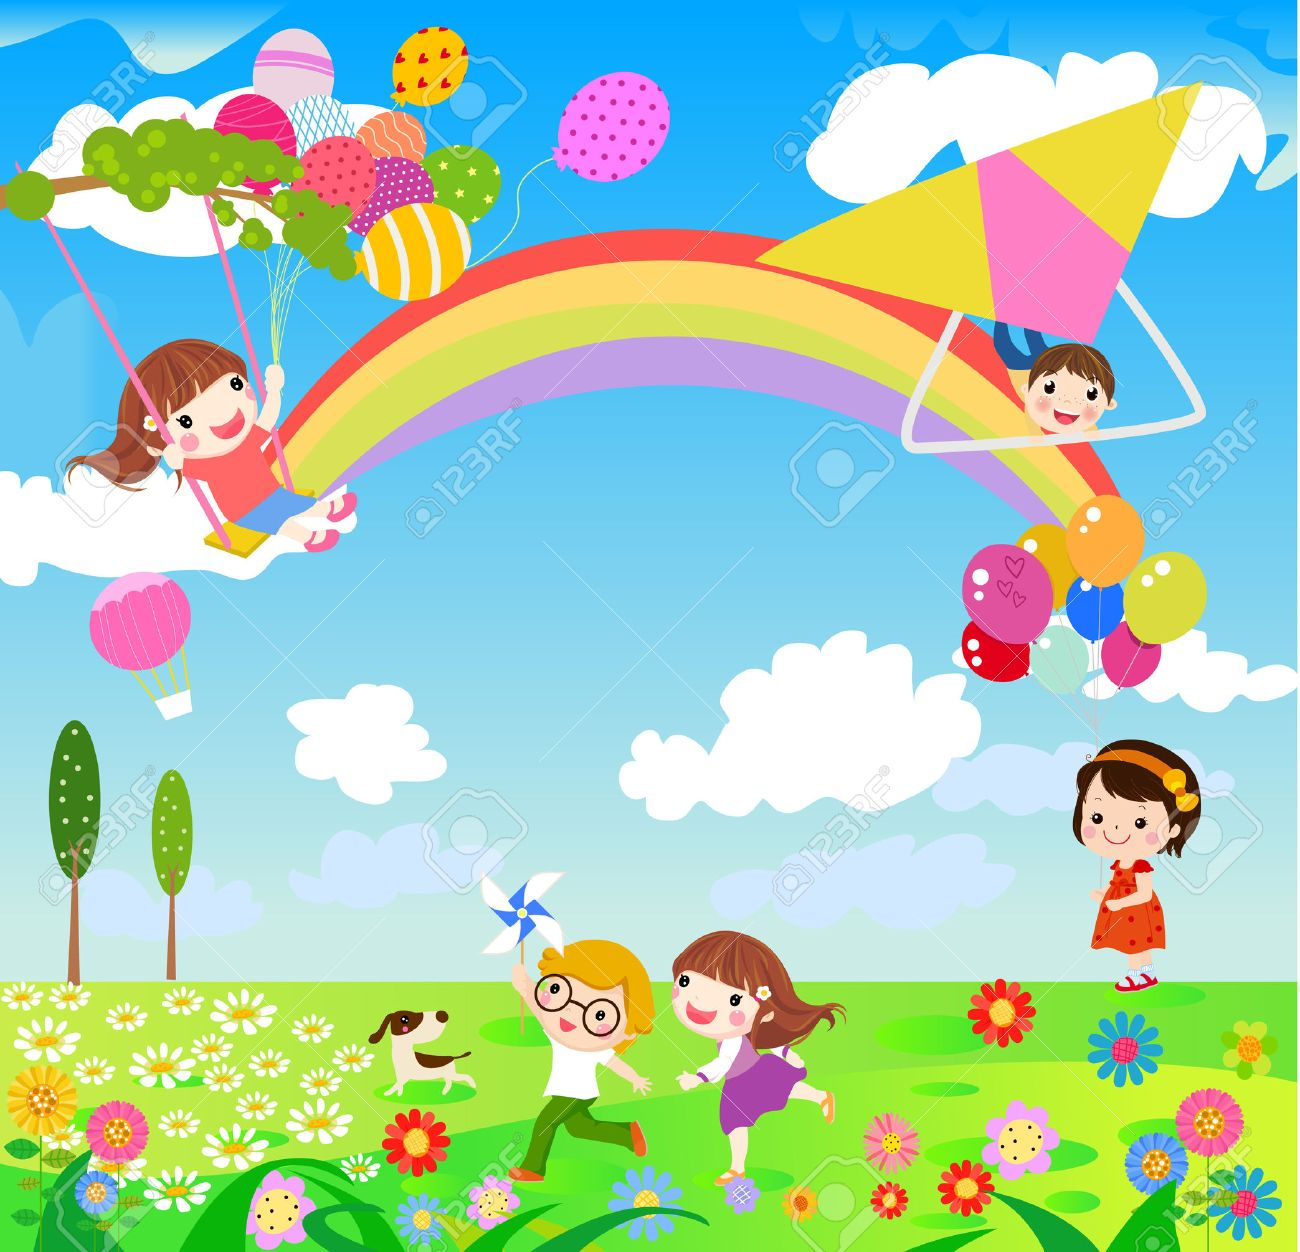 Authentic pictures for kids. Activities clipart spring season